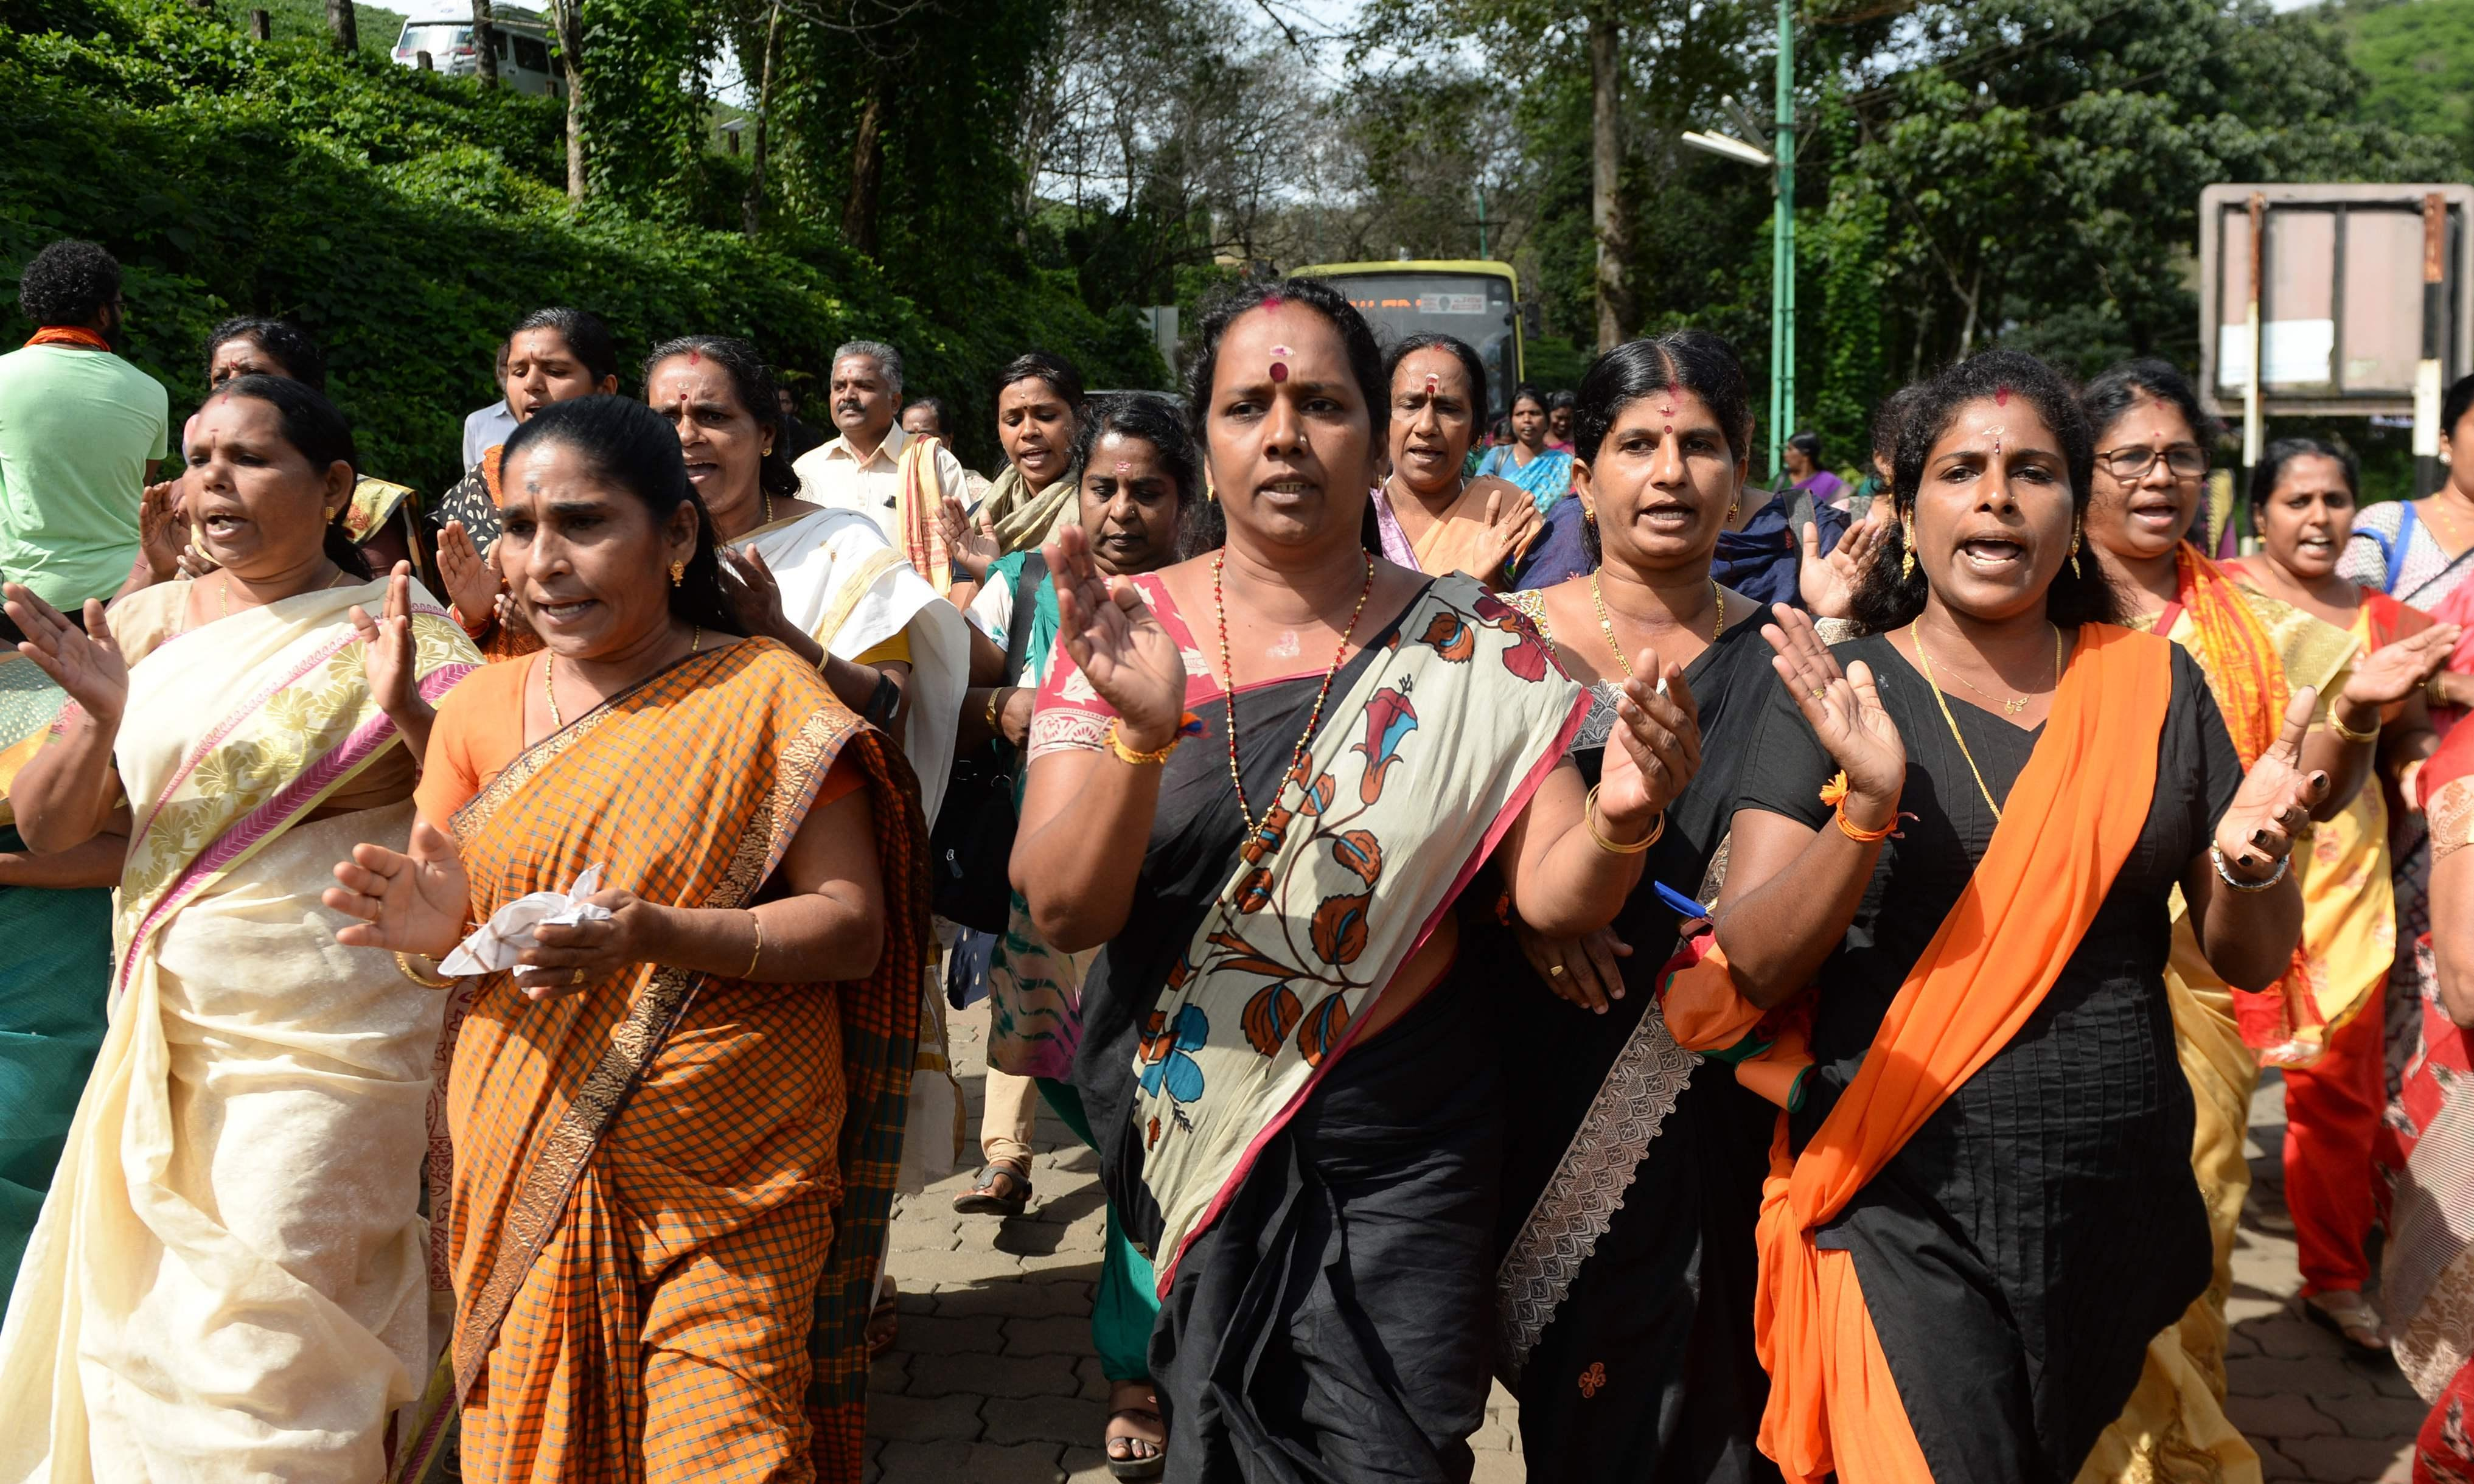 Tensions high in Kerala as Hindu temple opens gates to women